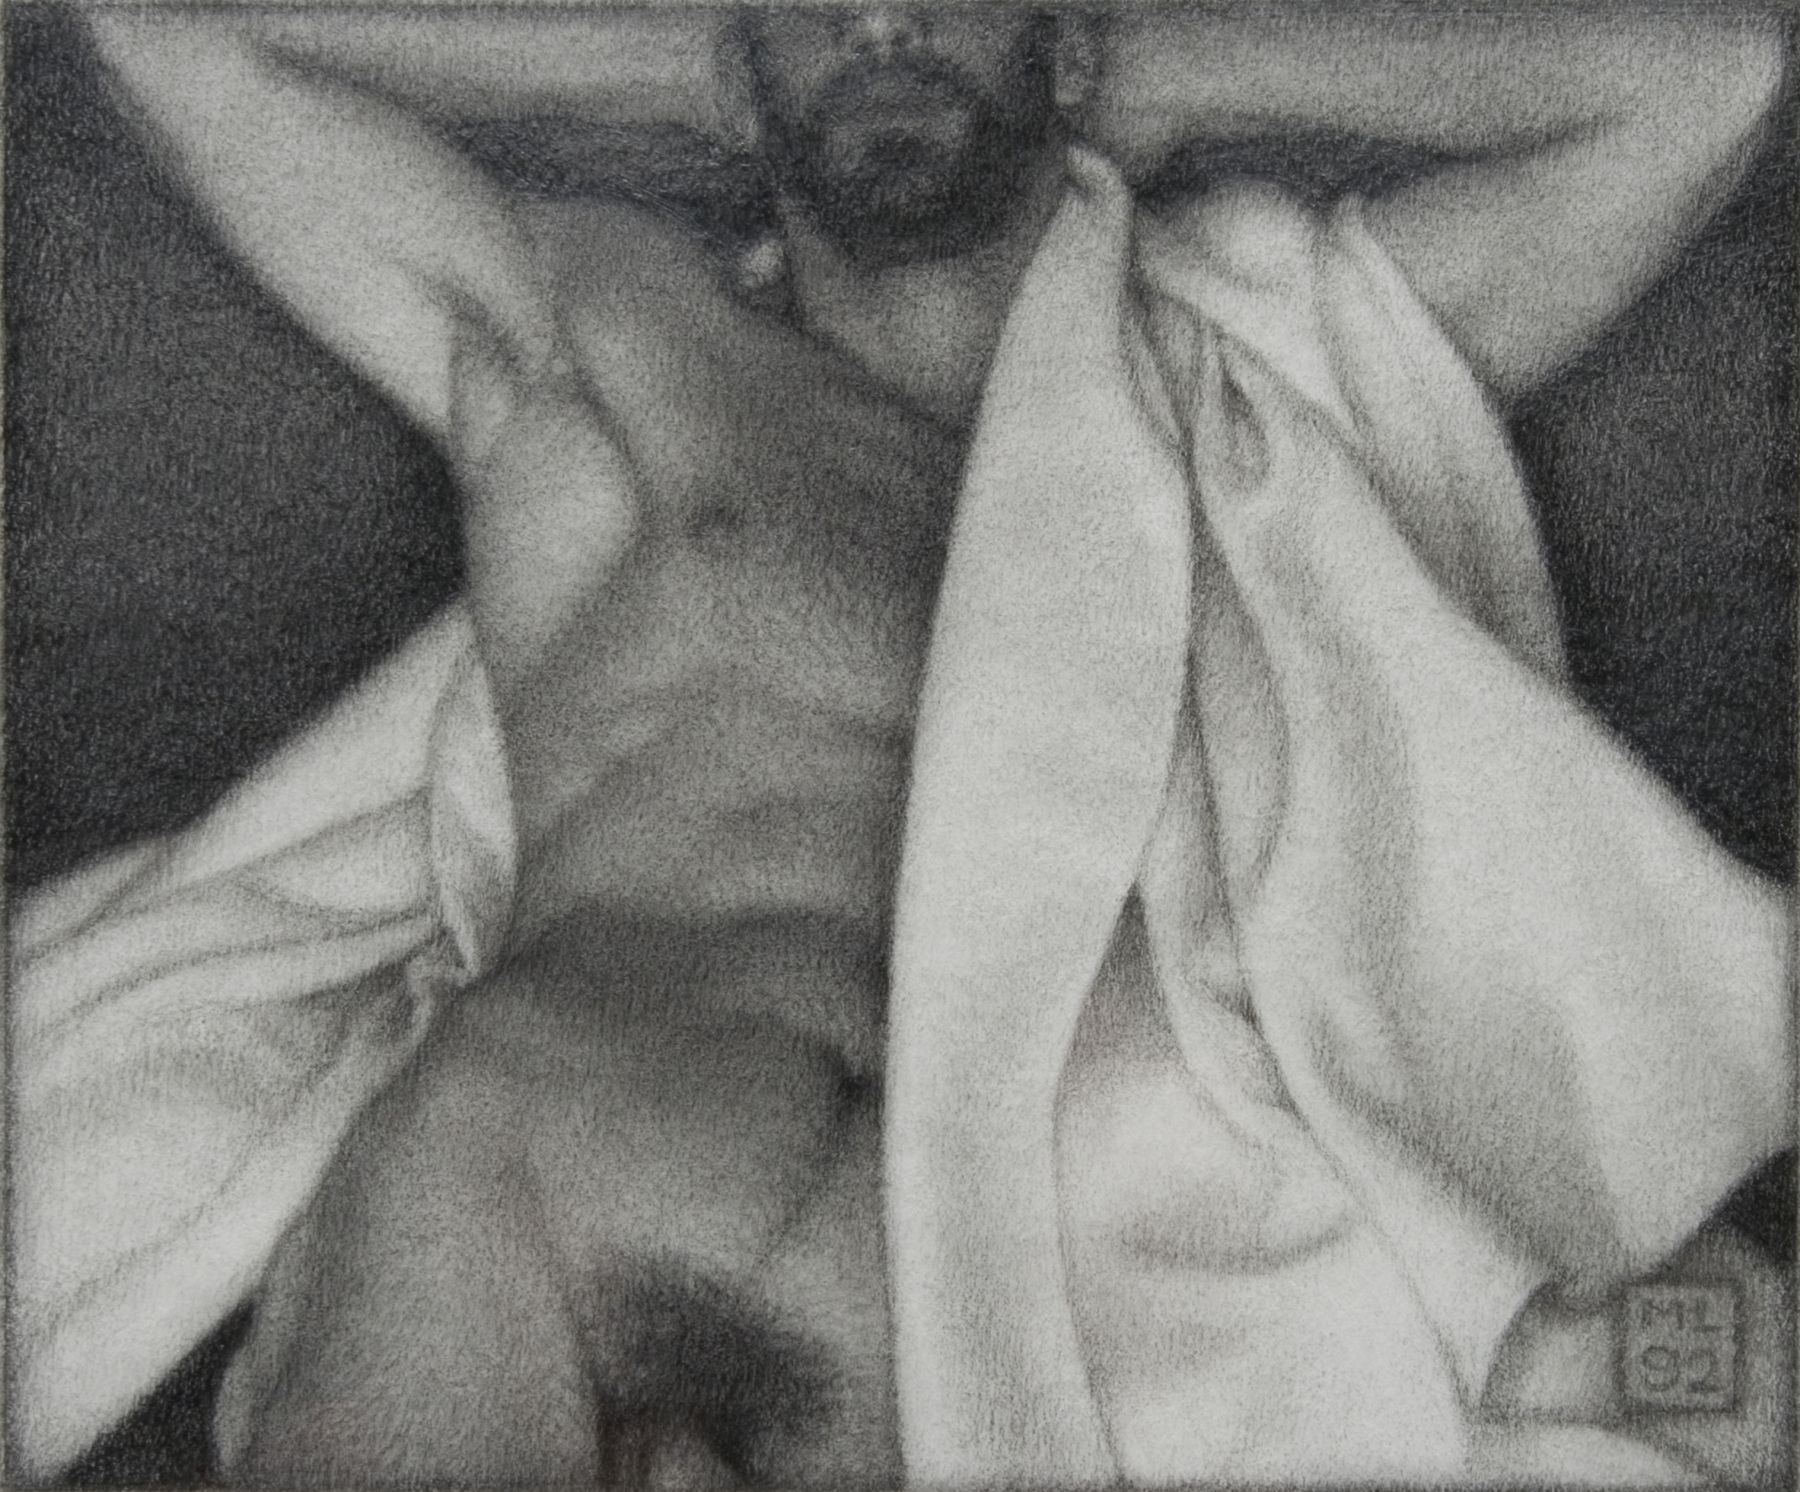 Michael Leonard, Relaxing Bather, 1992, graphite pencil on paper, 7 x 8 1/2 inches